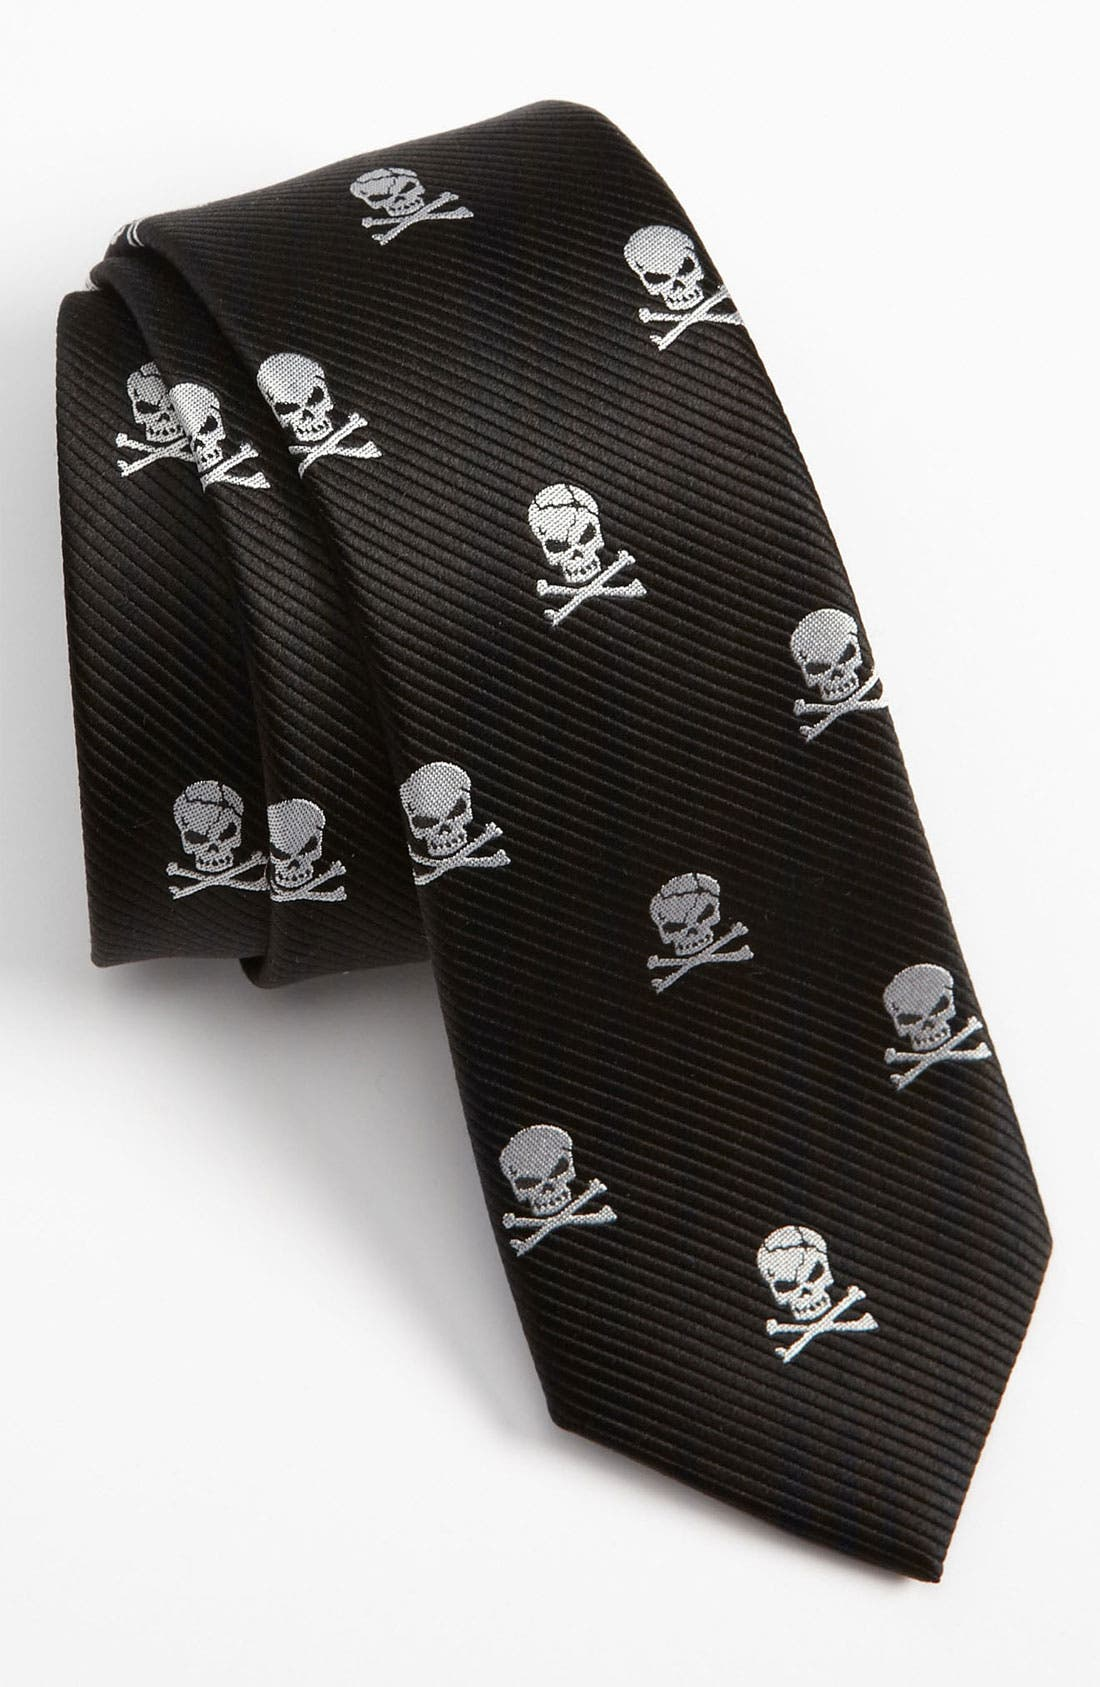 Main Image - The Tie Bar Silk Skull and Crossbones Tie (Online Only)